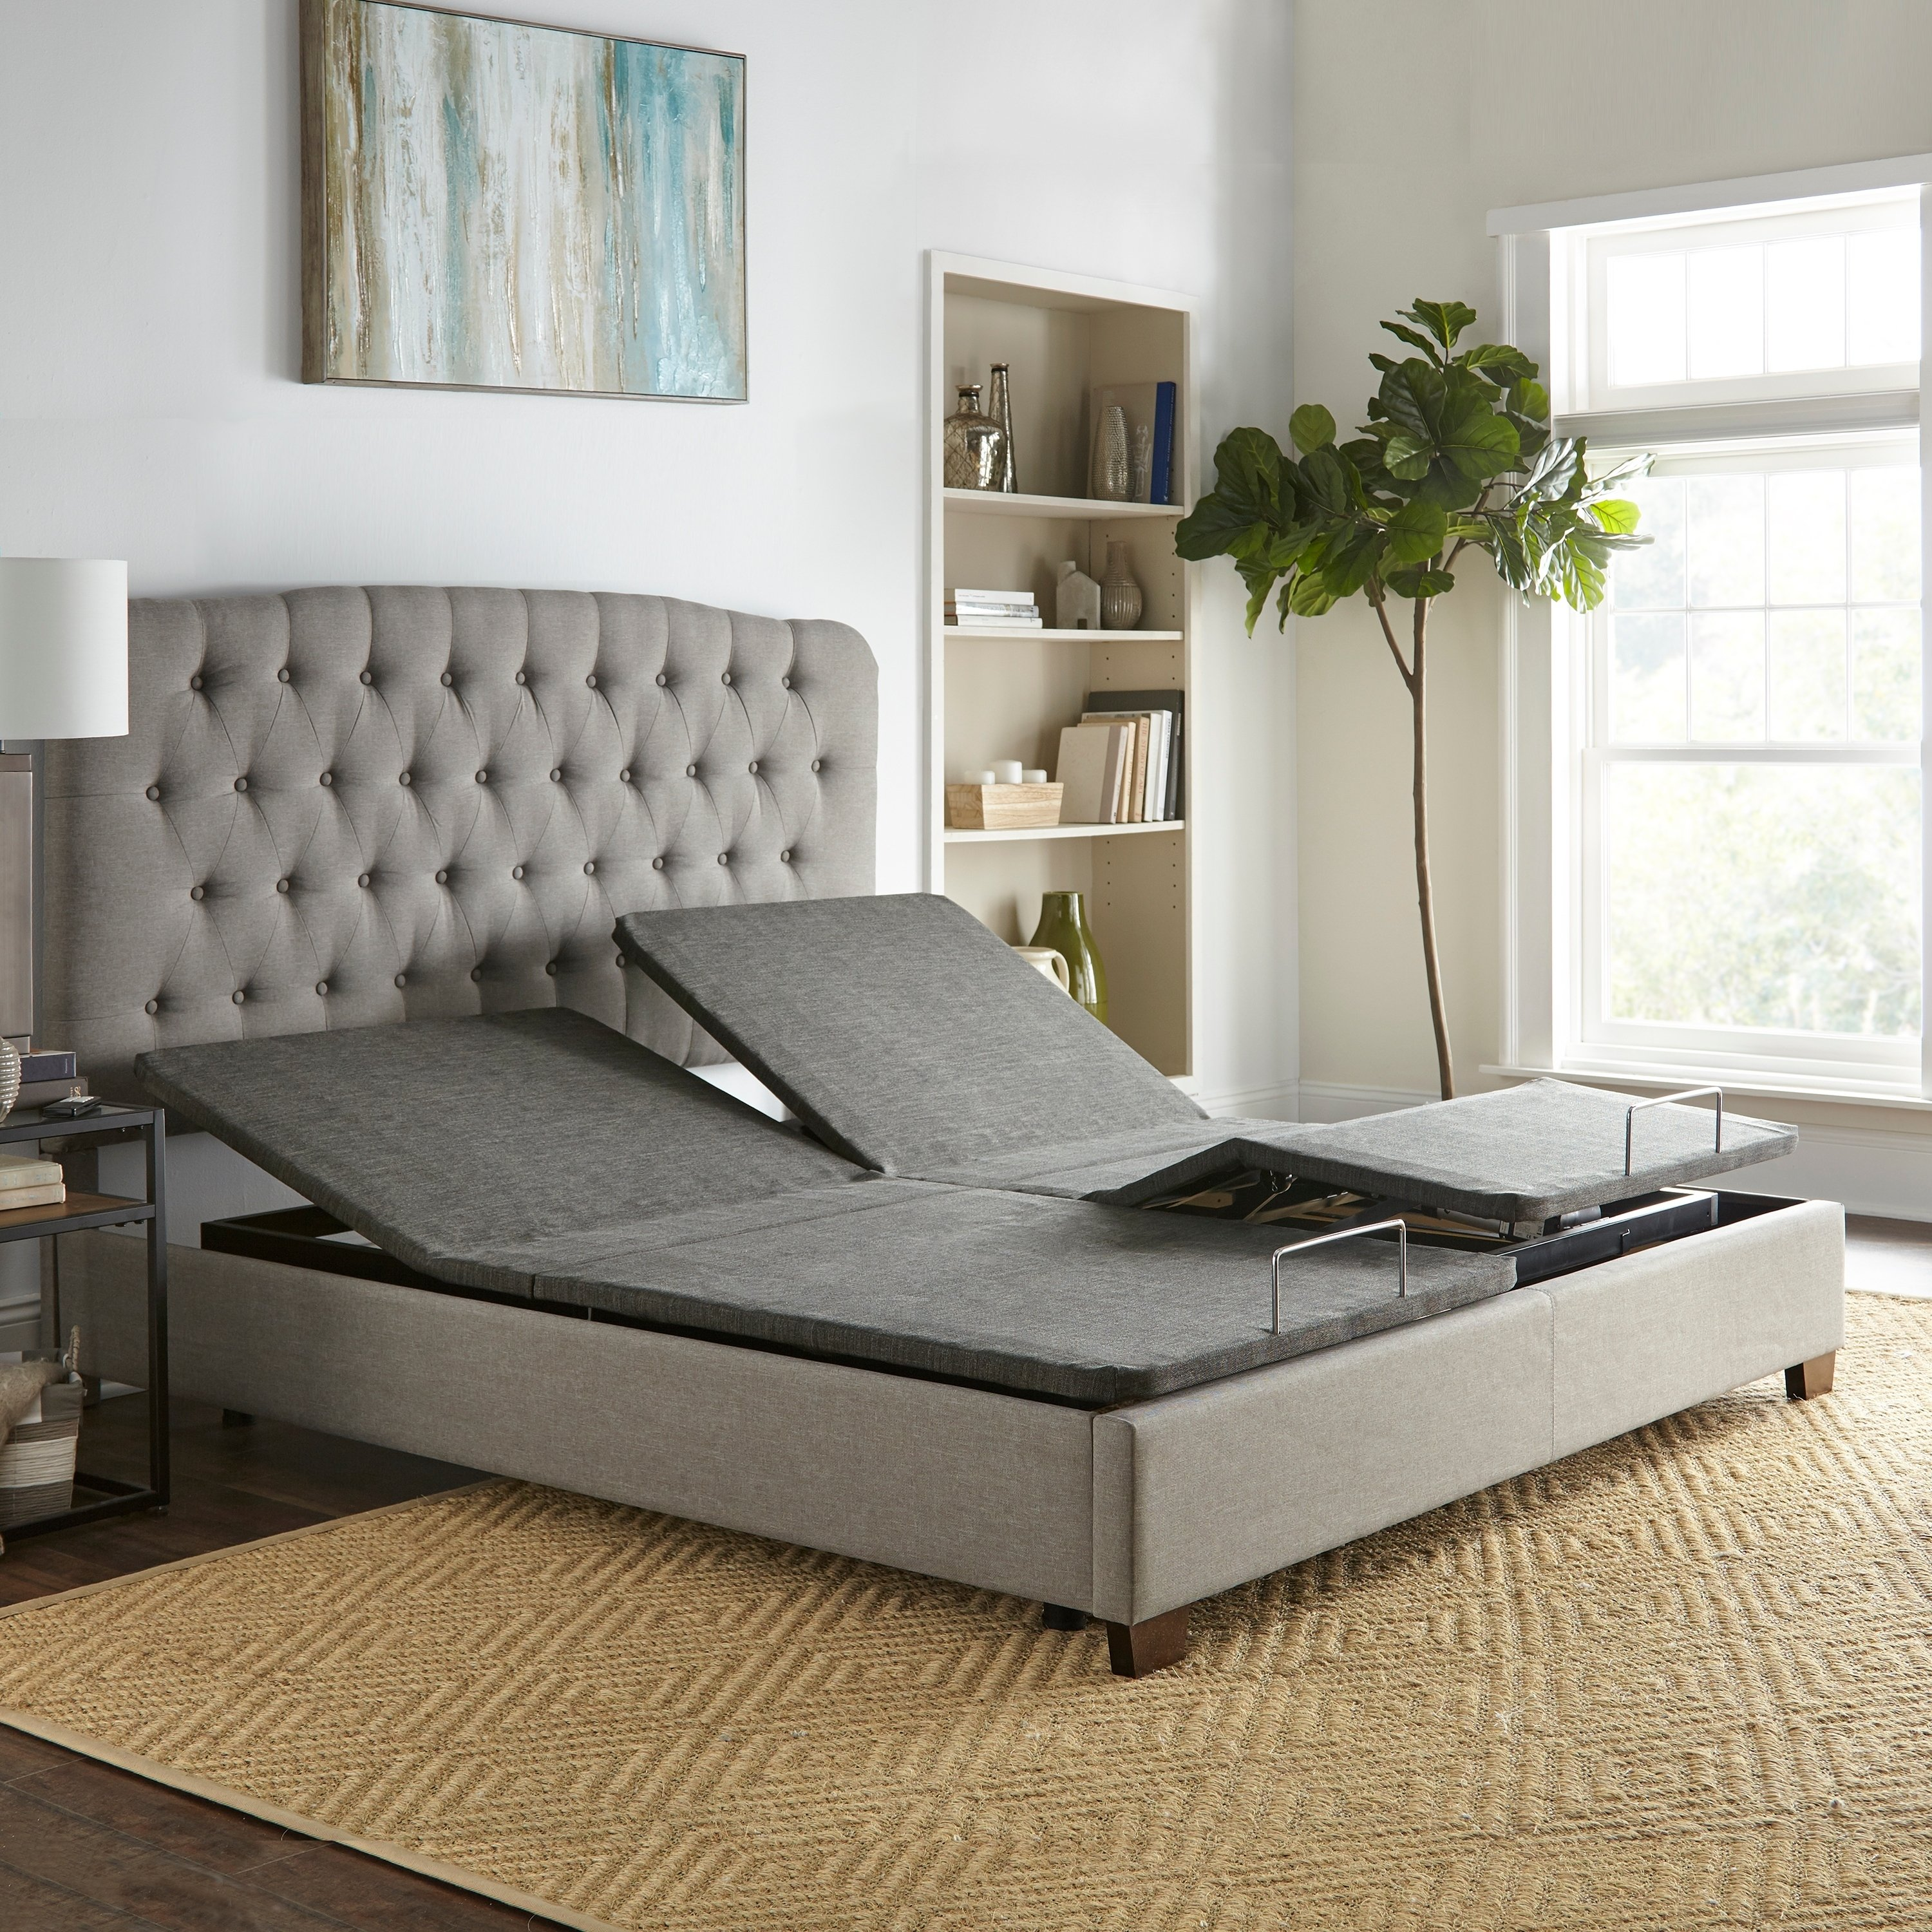 Sleep Sync Adjustable Bed Base Upholstered Split King Wireless